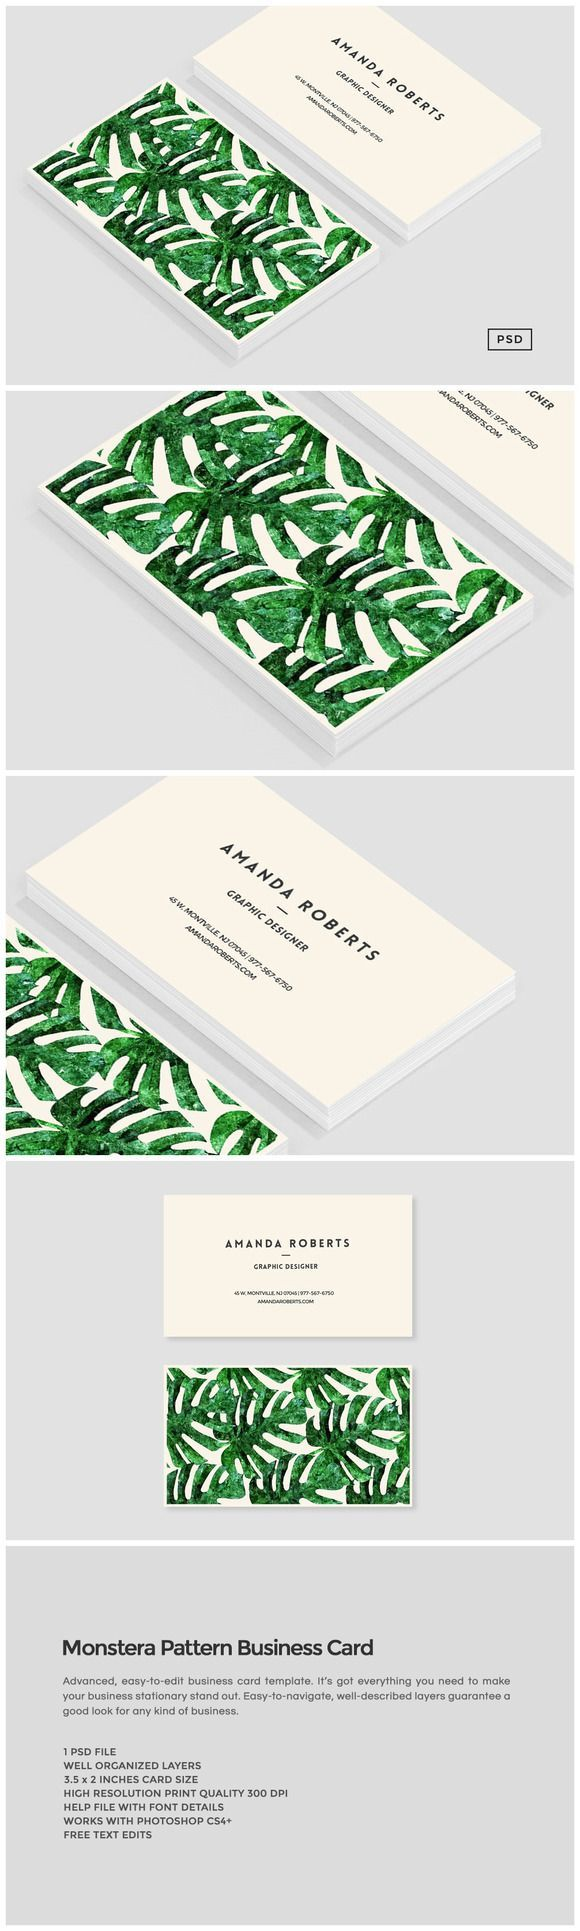 Monstera pattern business card introducing our latest monstera monstera pattern business card introducing our latest monstera pattern business reheart Images